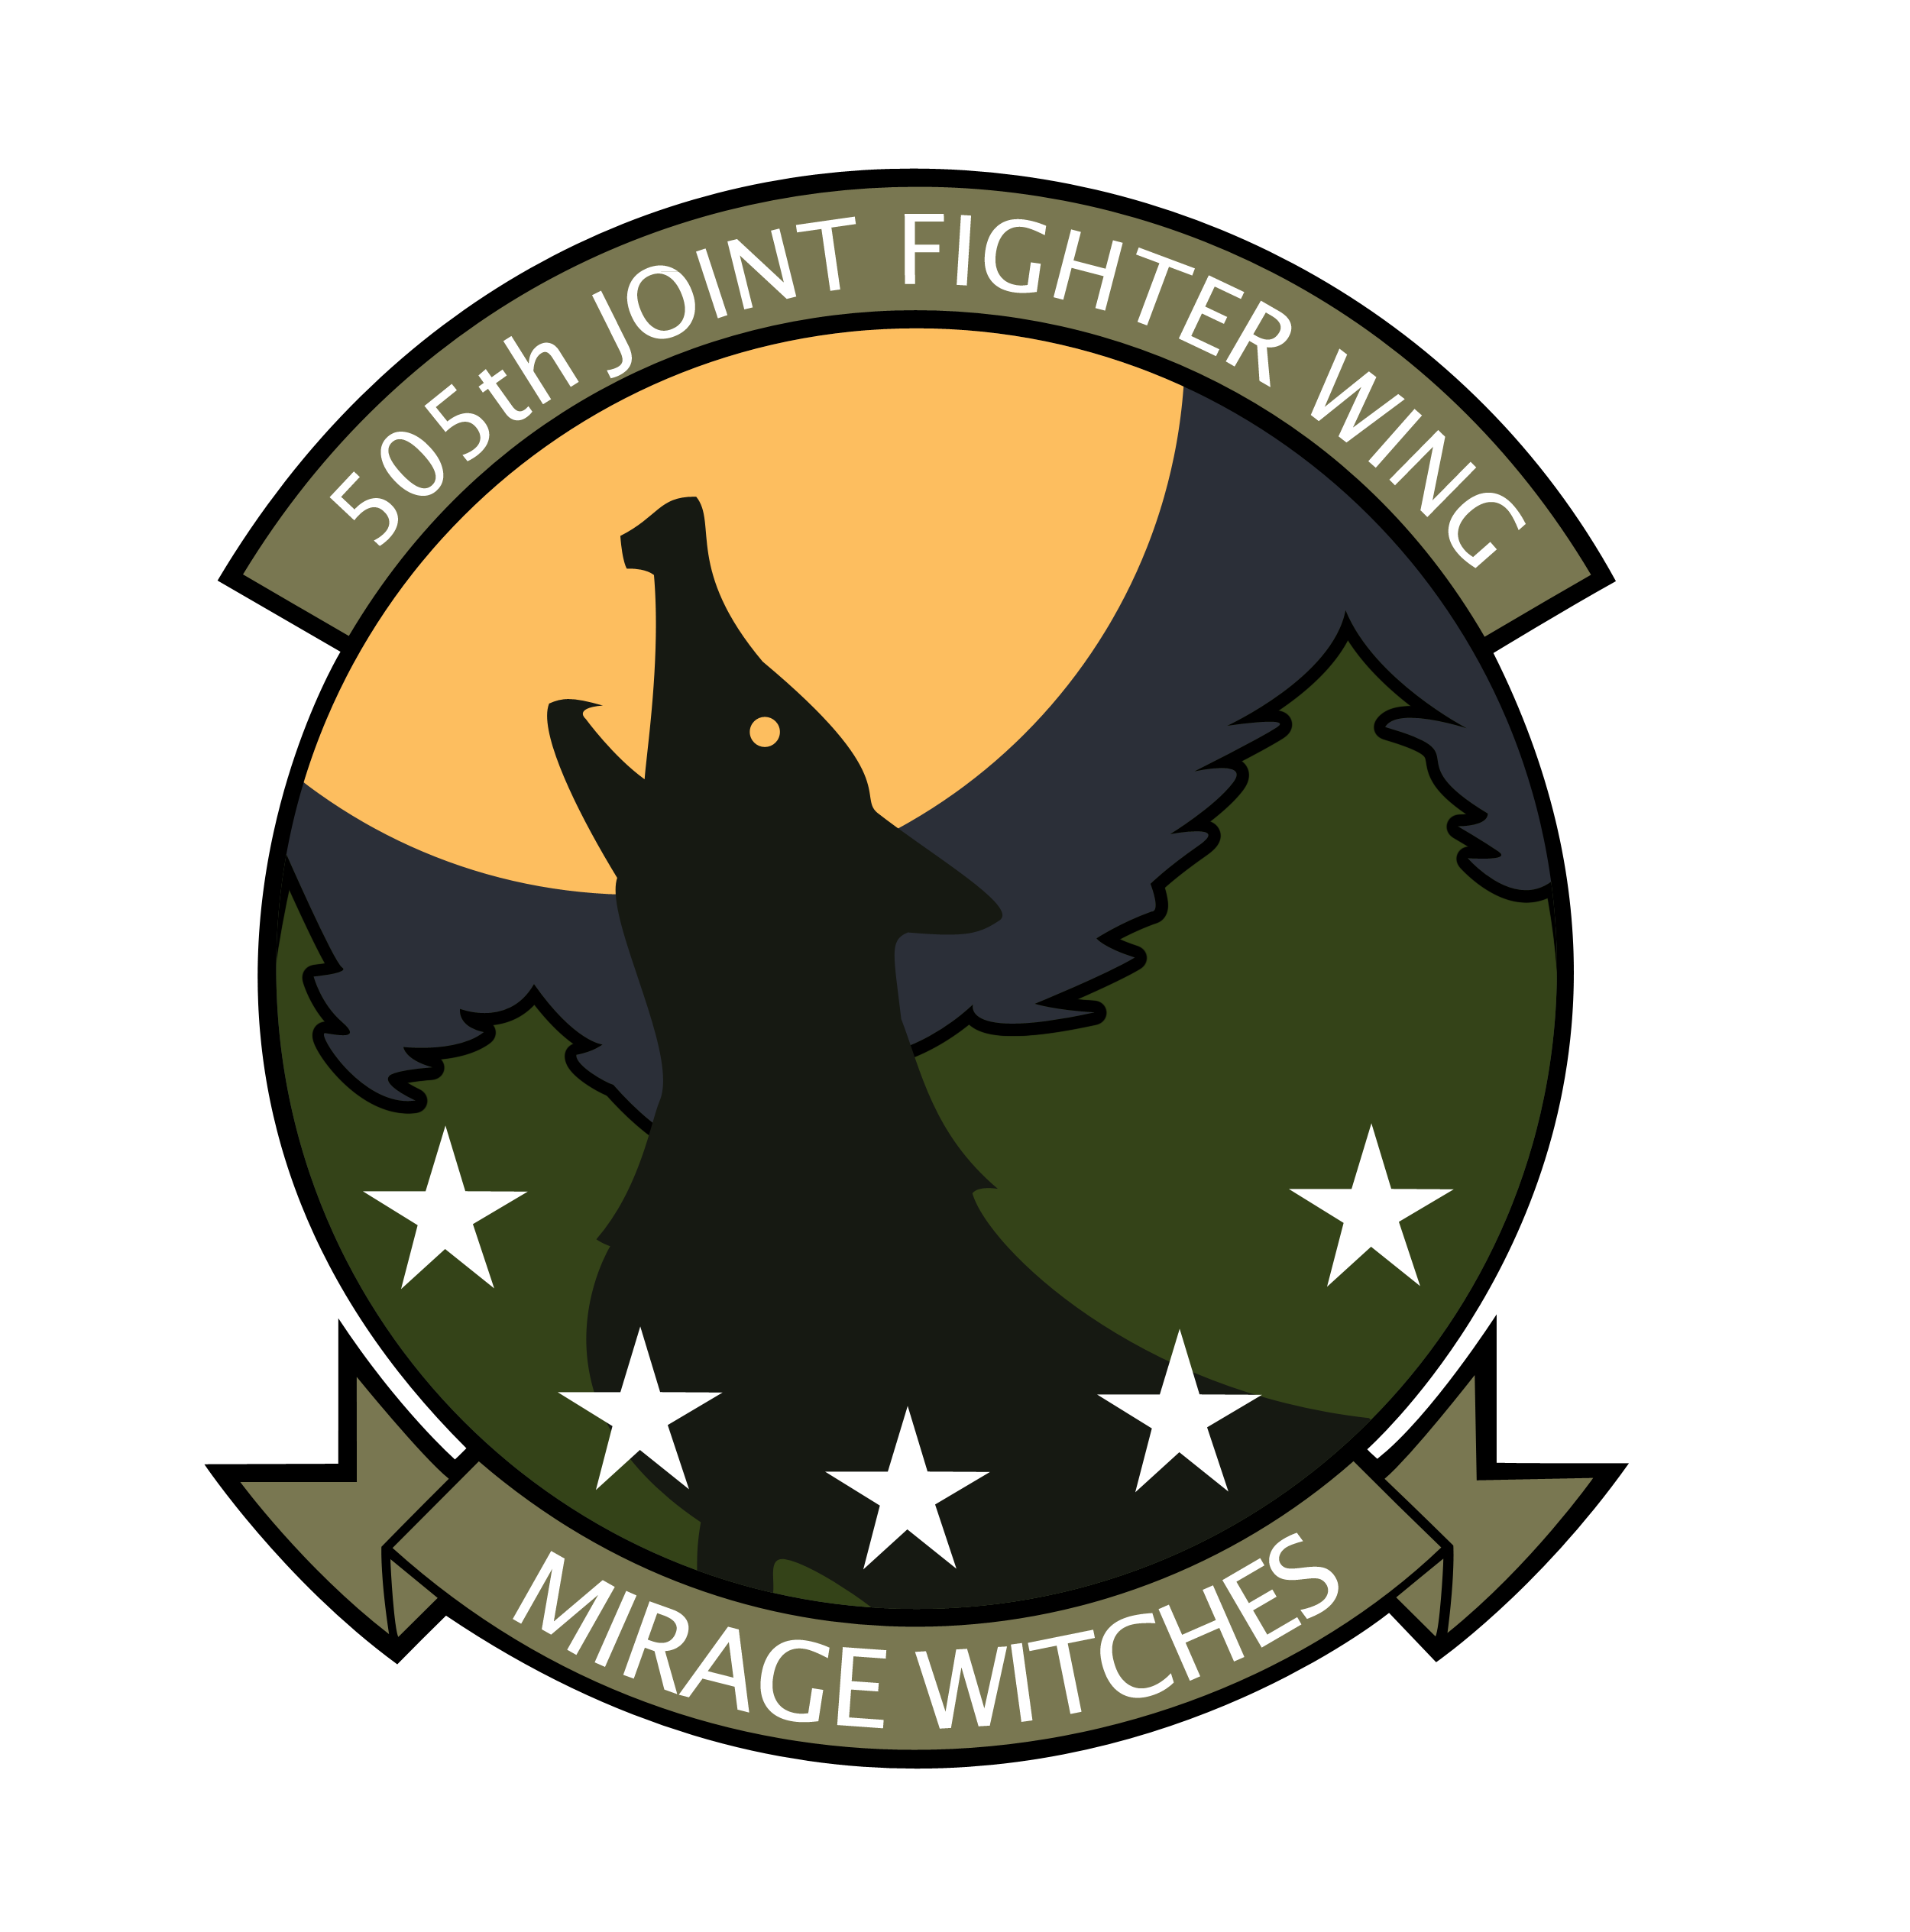 505th Joint Fighter Wing